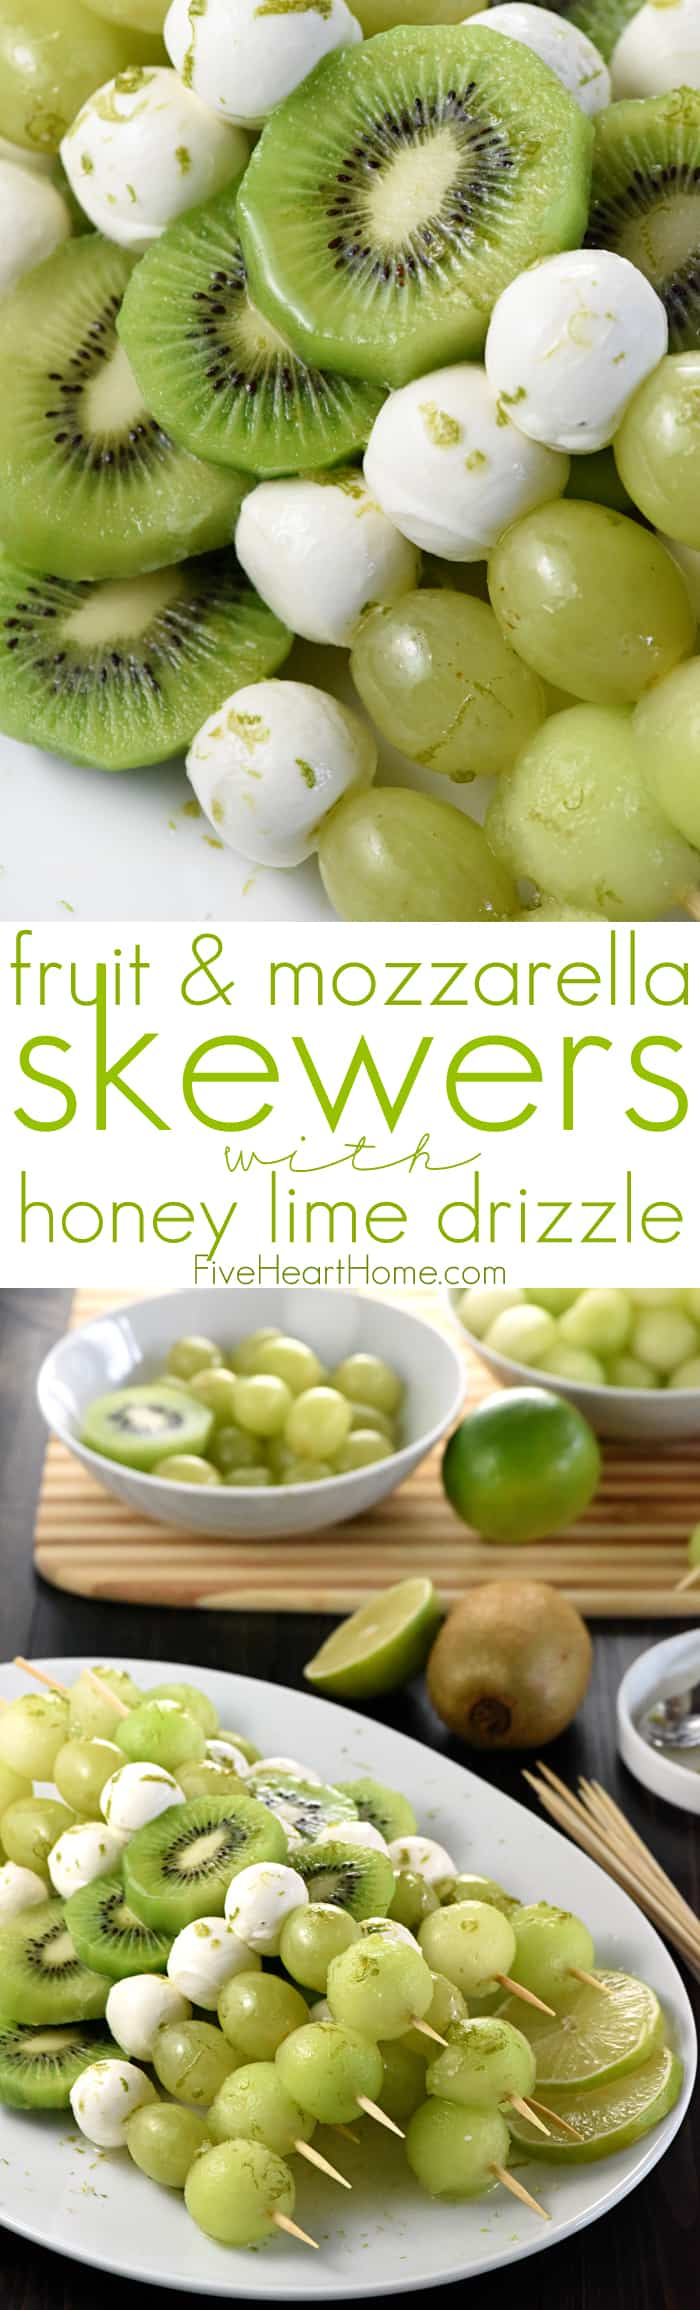 Fruit & Mozzarella Skewers with Honey Lime Drizzle Collage with Text Overlay